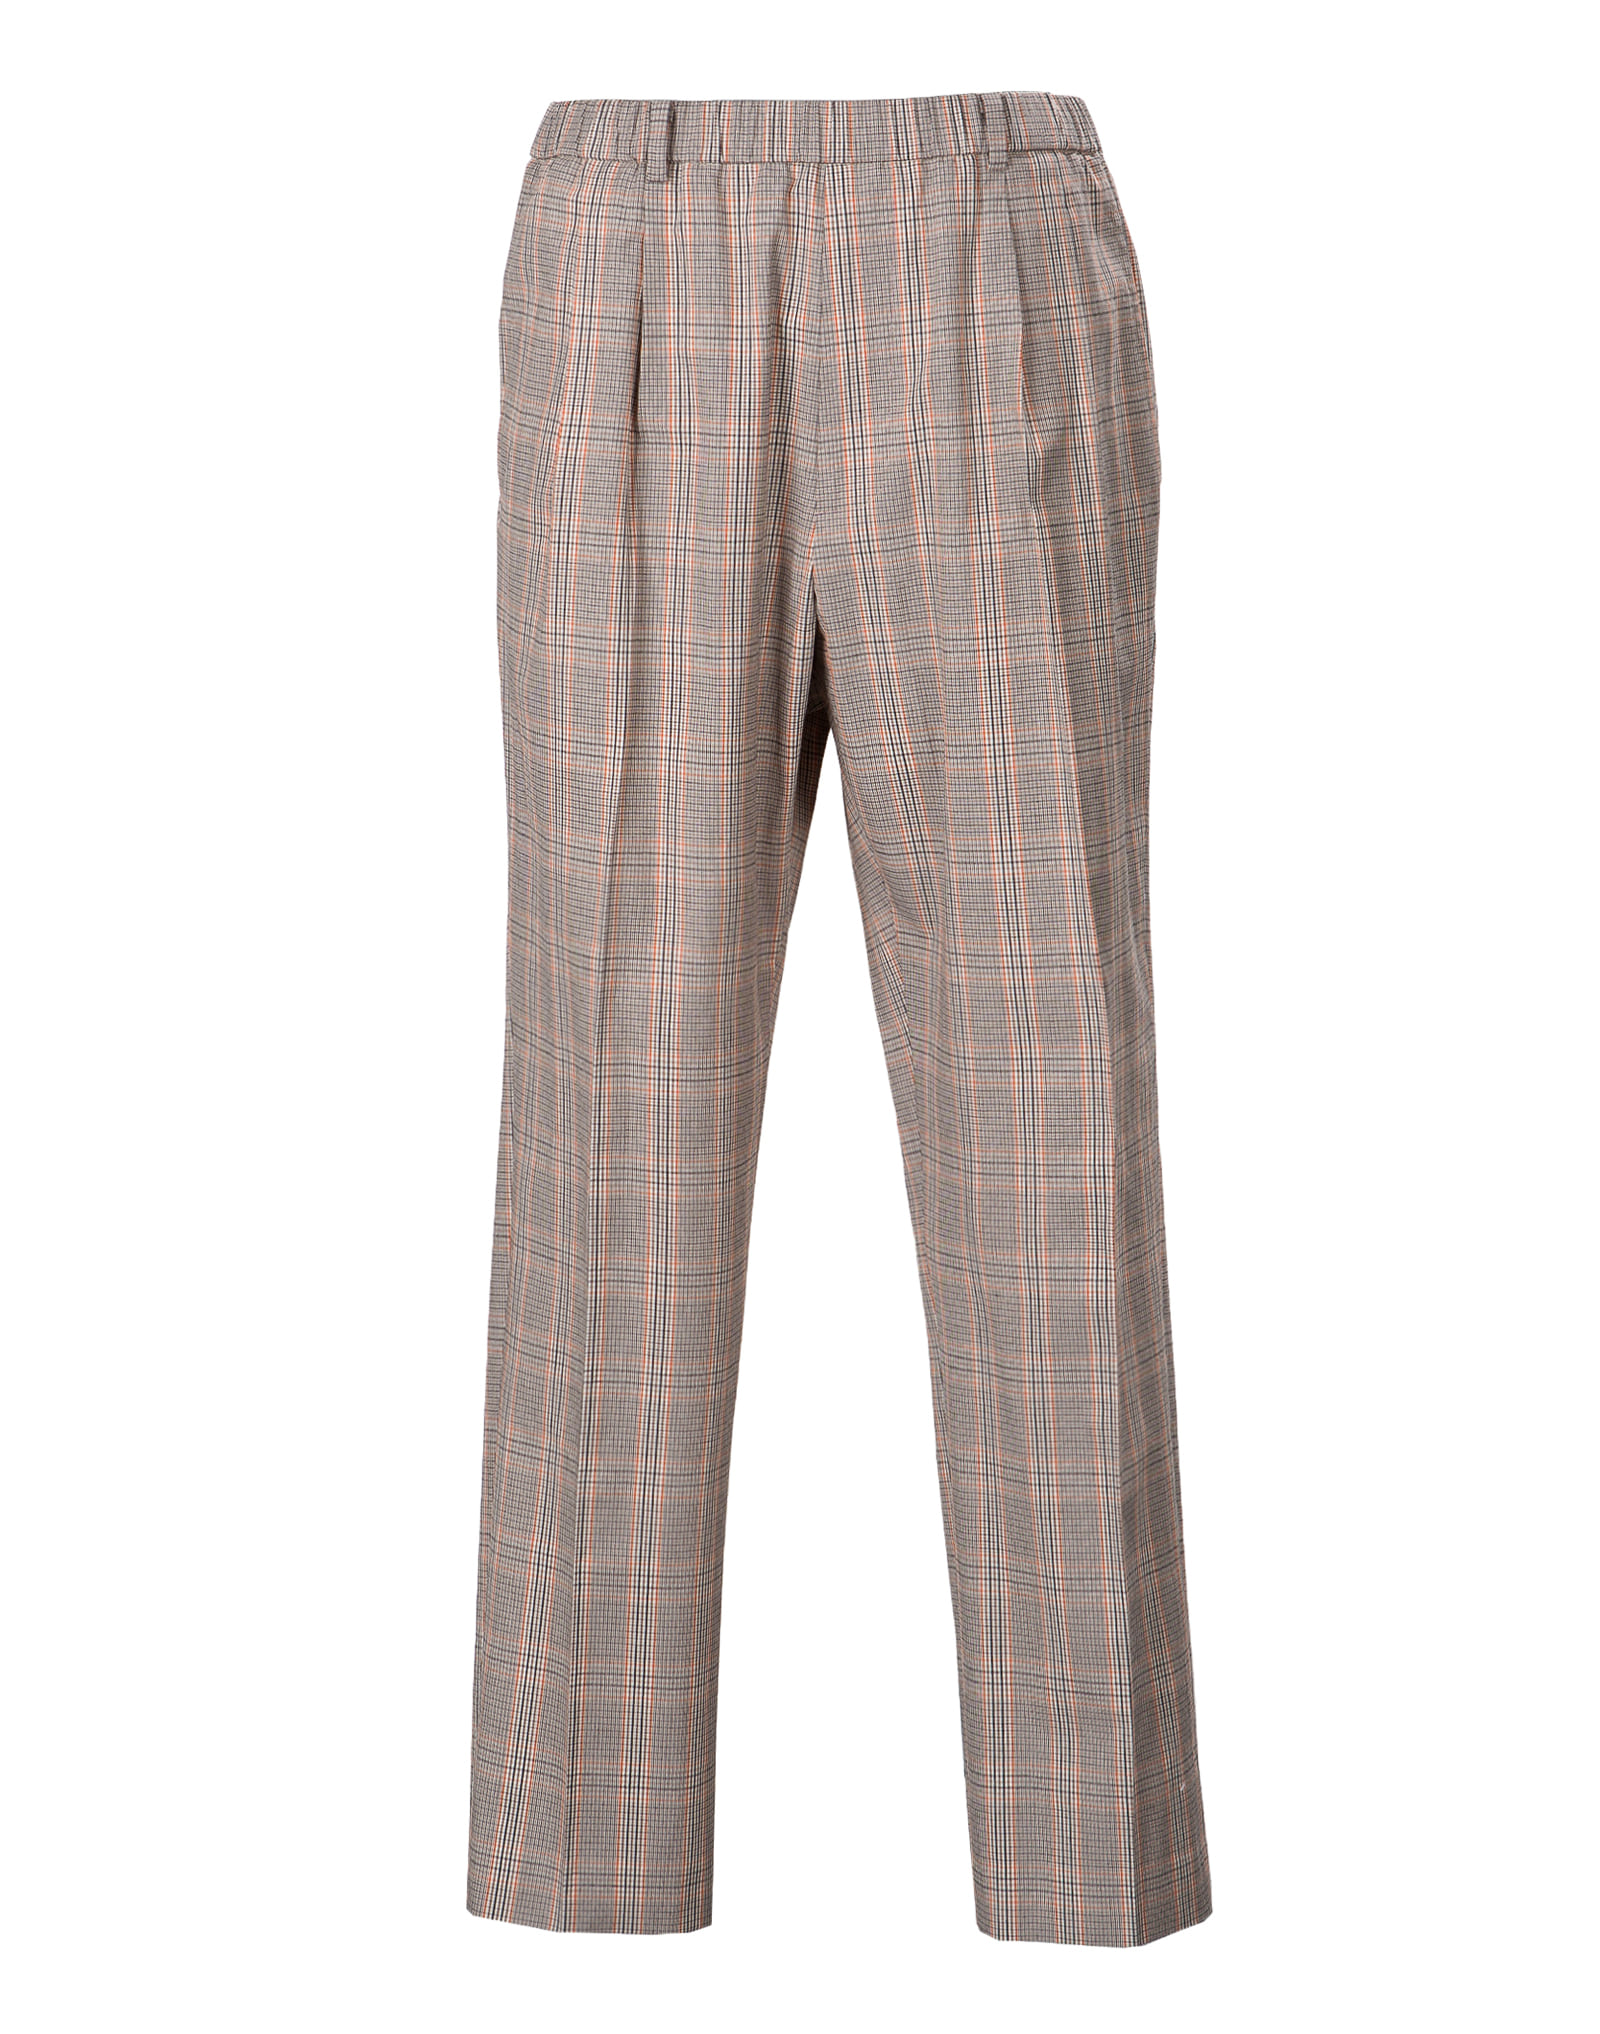 Gray & pink check Banding chef Pants #AP1907